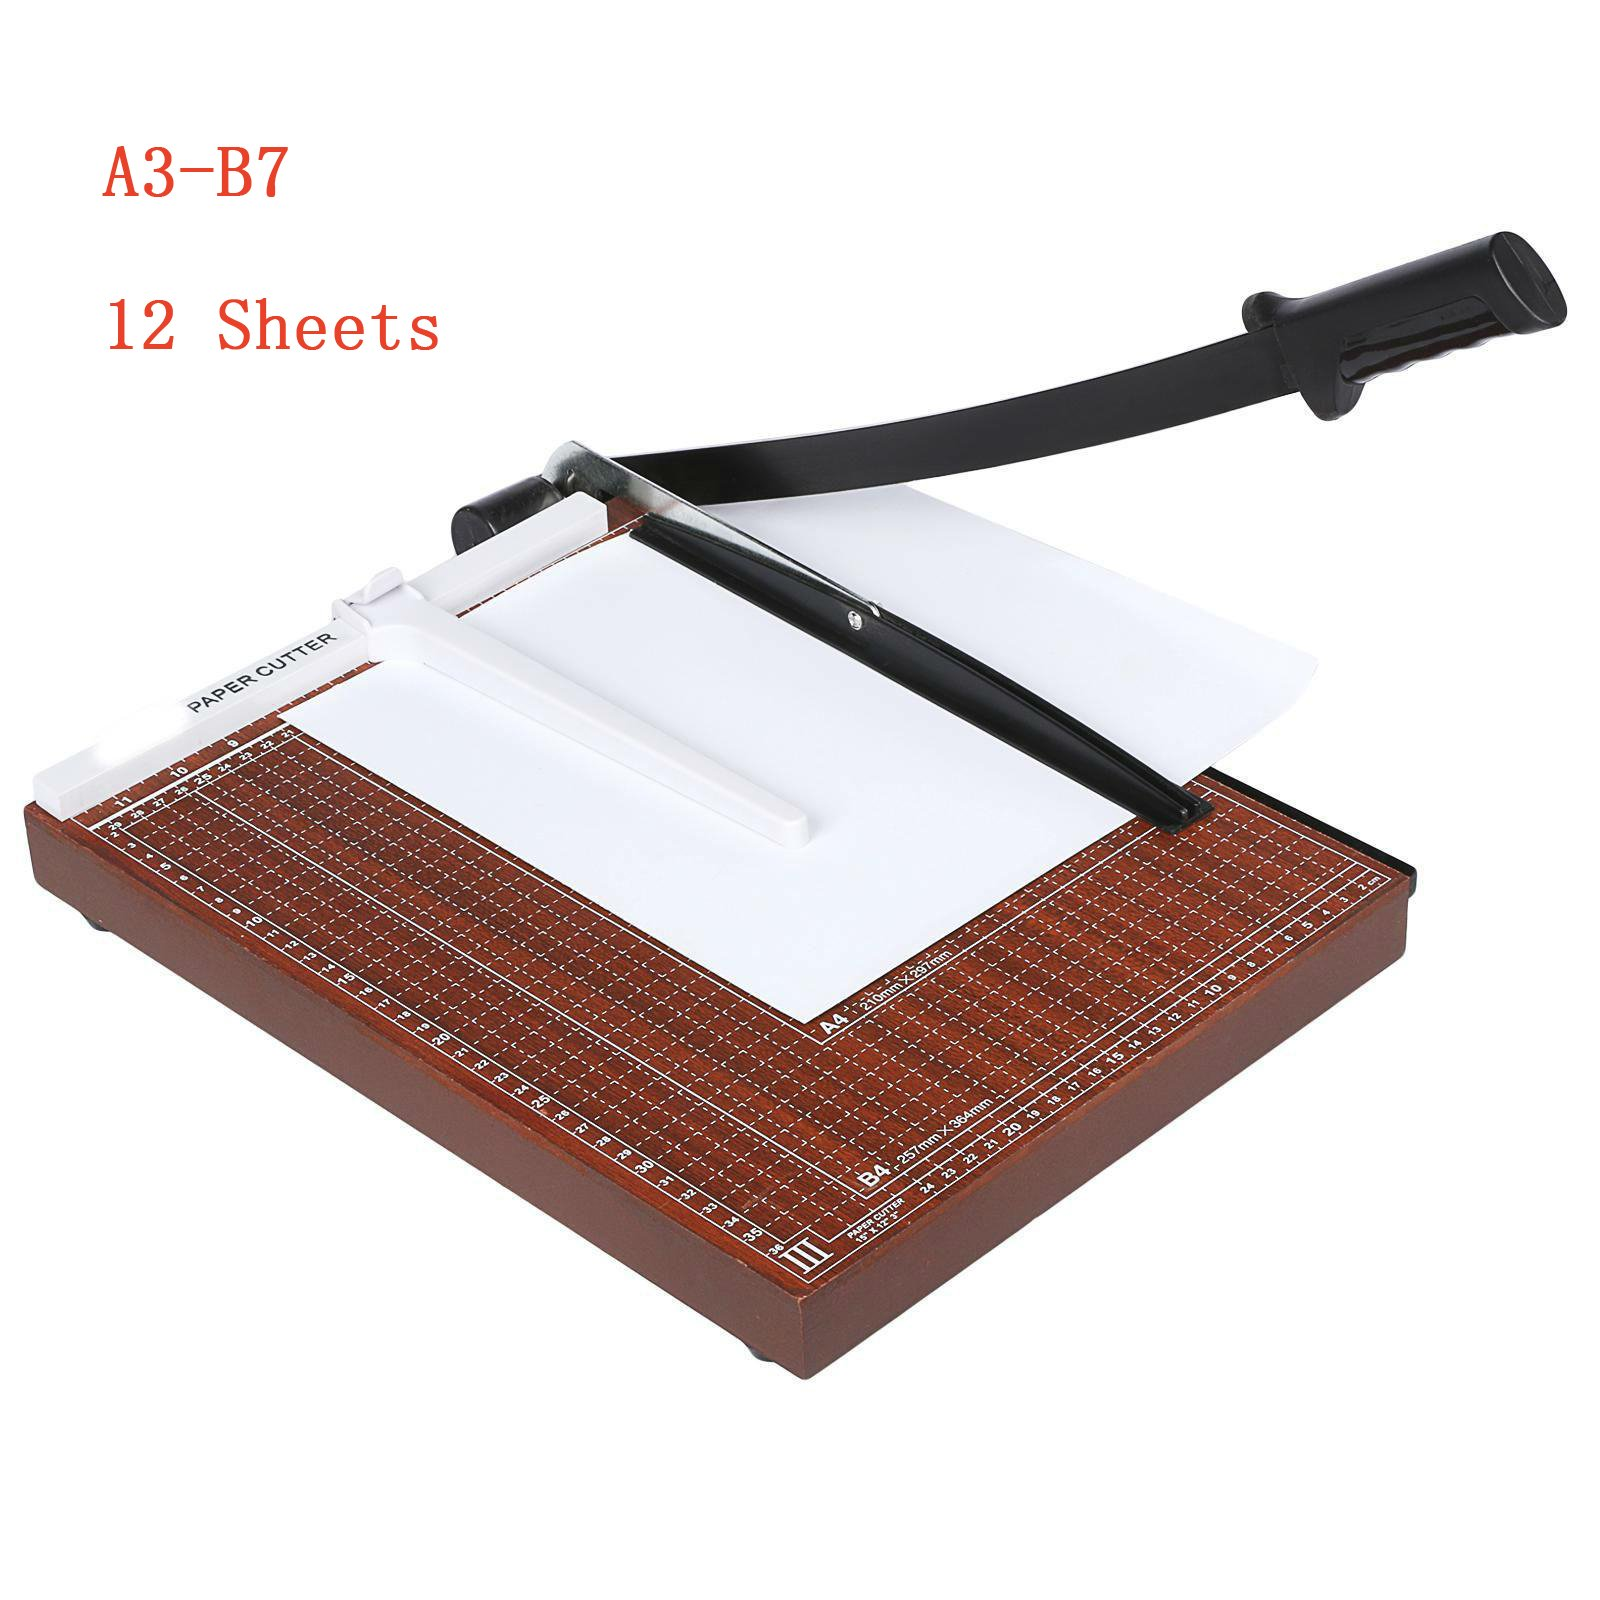 Foshin Paper Cutters Trimmers, Heavy Duty 12 Sheets Professional Office Home Desk Tops Paper Cutter Scrap Guillotine Trimmer Machine, A3-87 (US Stock)